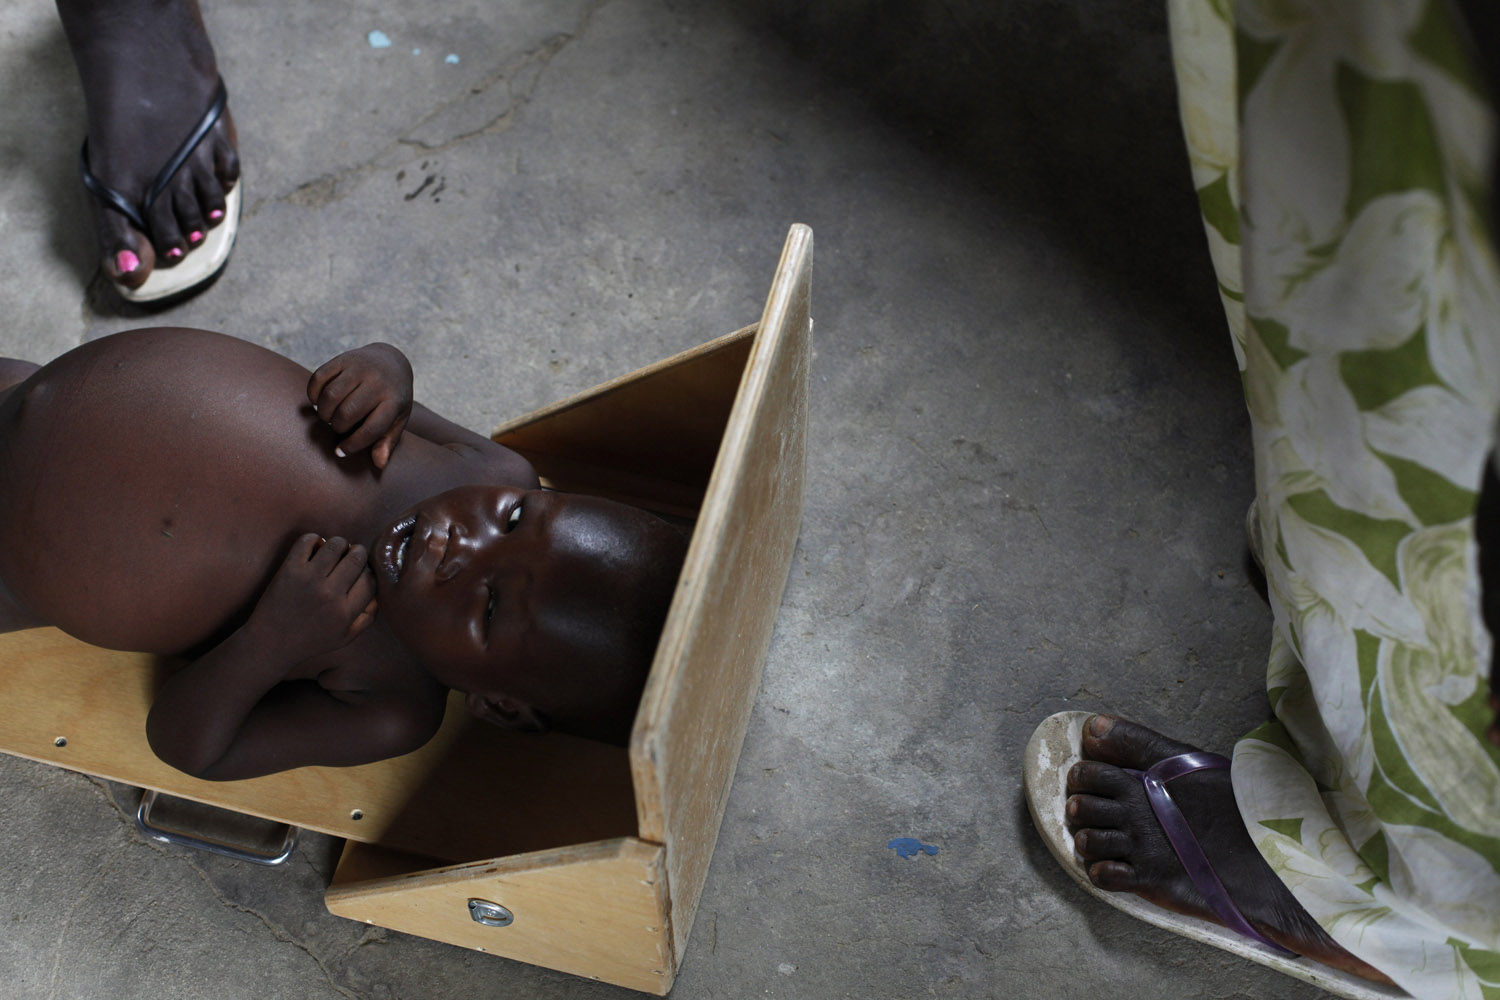 Jul. 16, 2014. A severely malnourished child is measured at the Medecins Sans Frontieres (Doctors Without Borders, MSF) feeding center in Leer, Unity State, South Sudan.